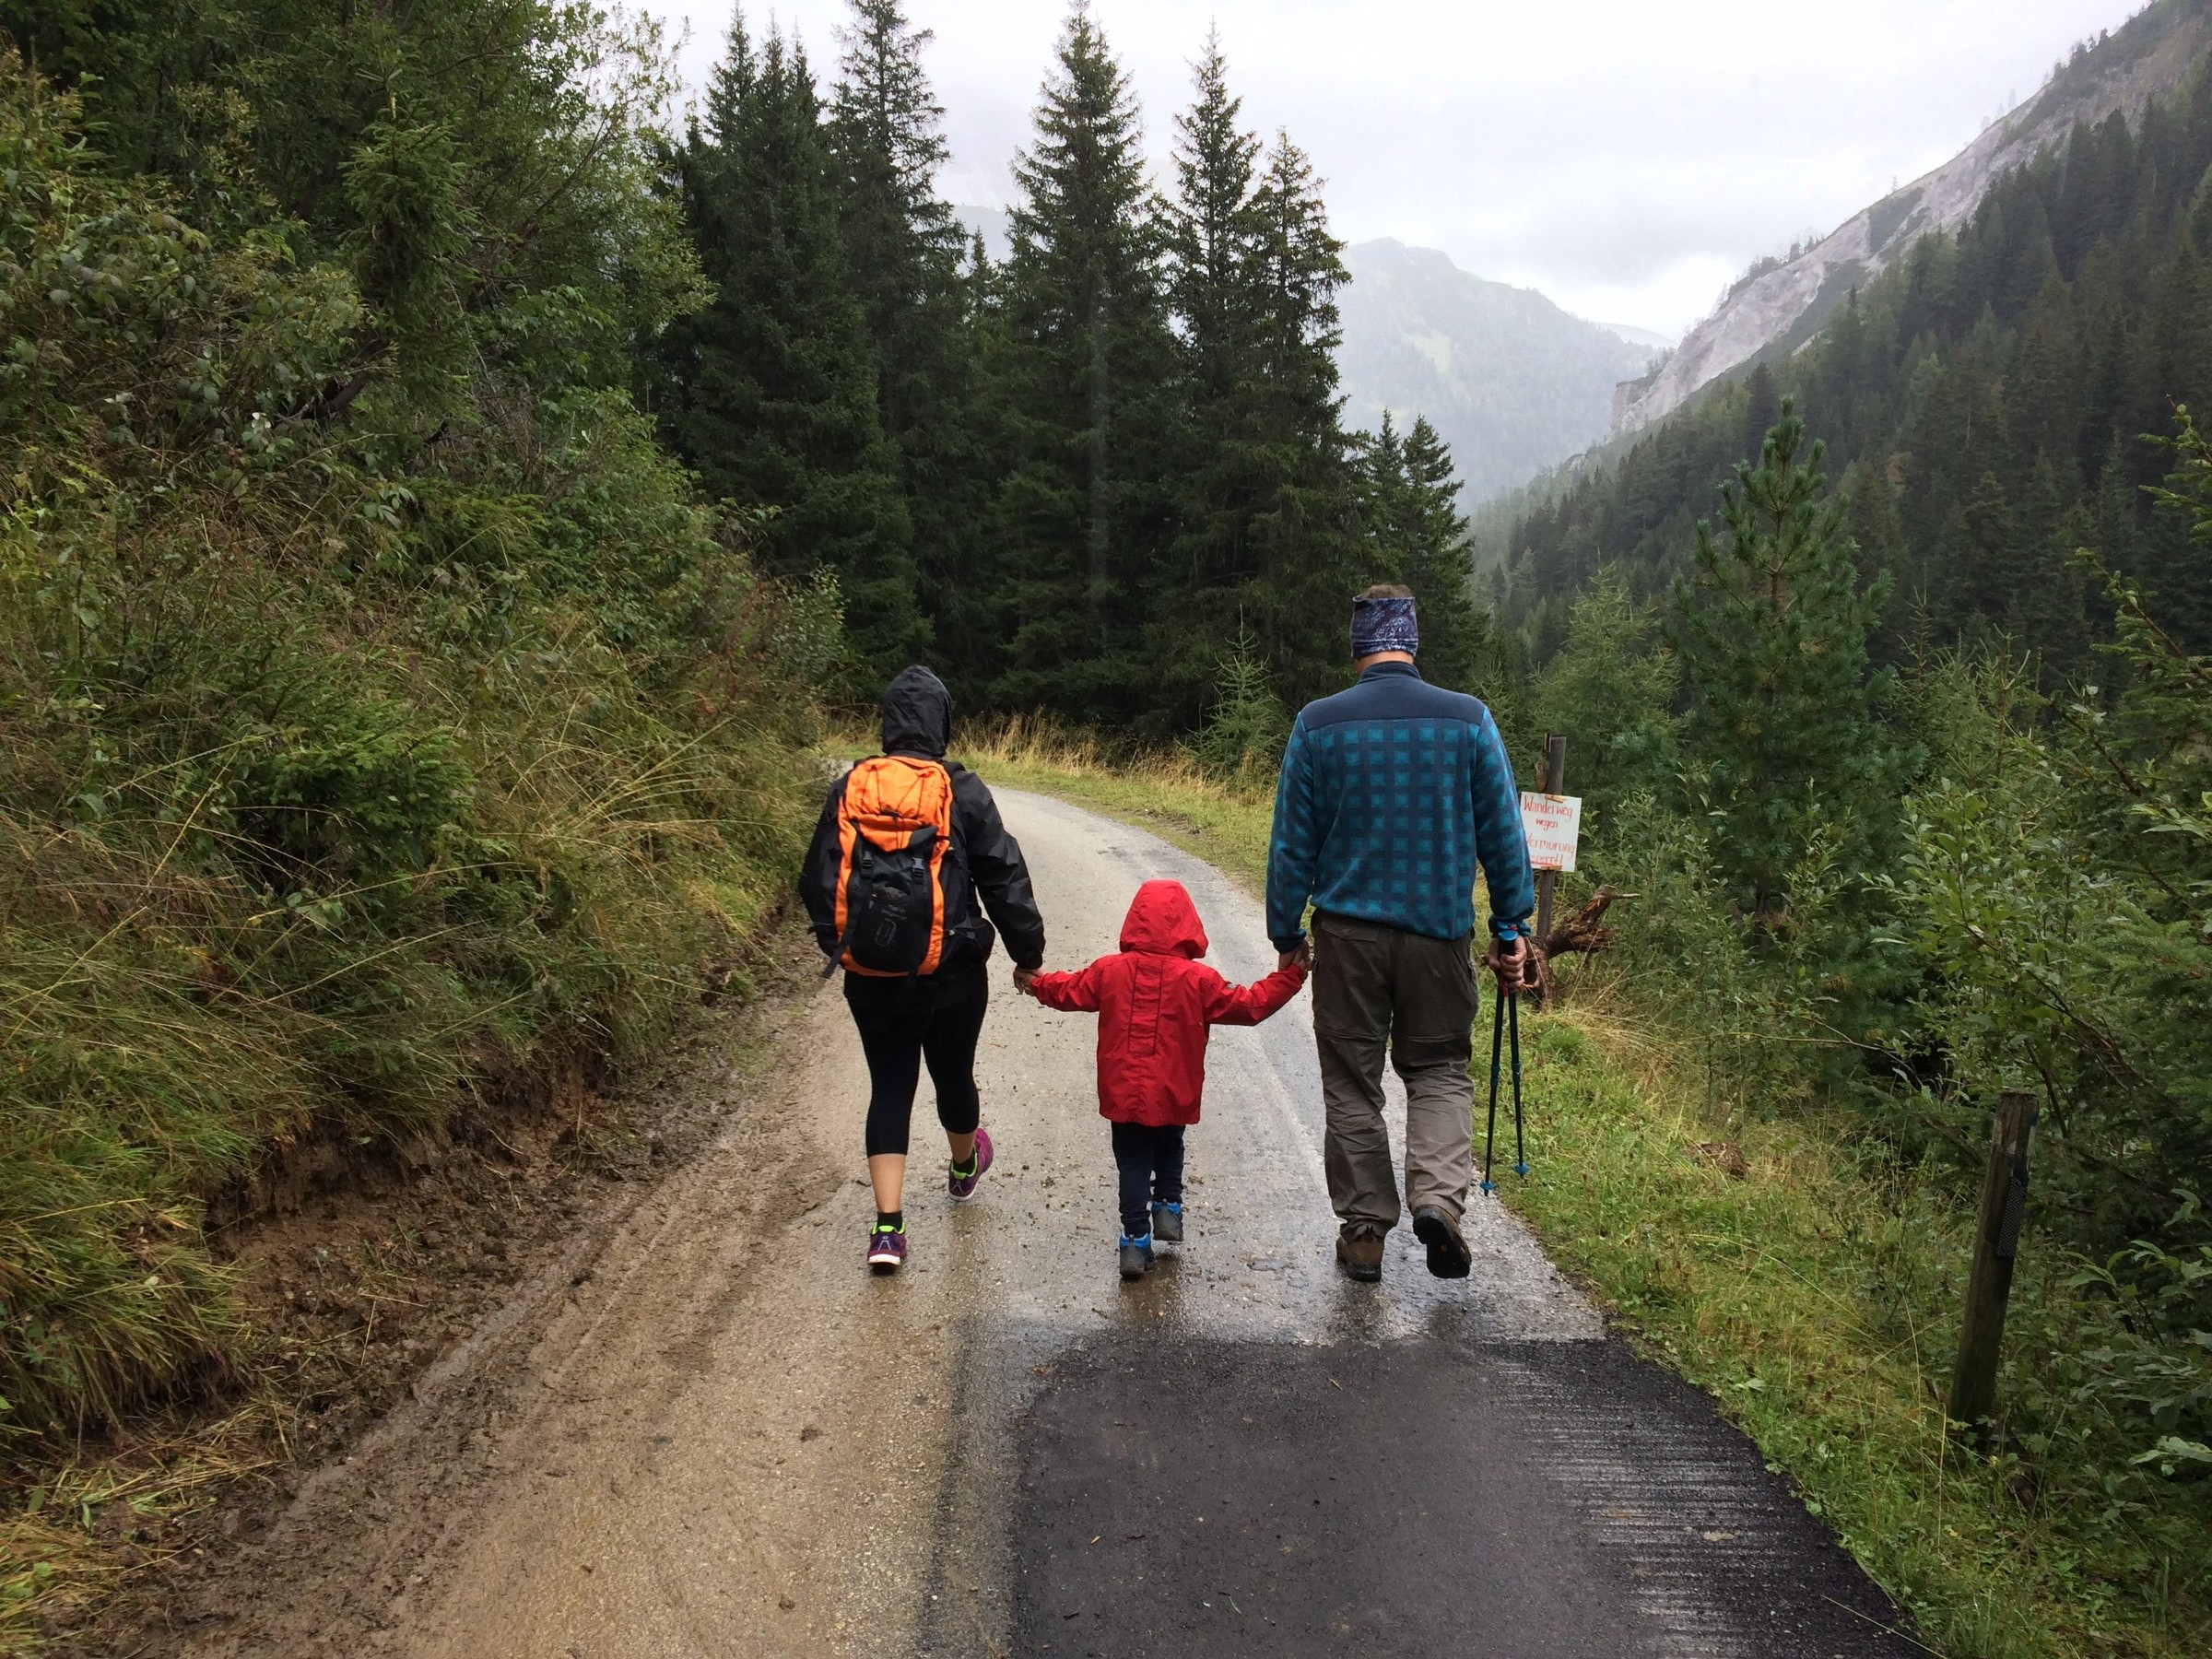 Family walks together down a mountain road, with two parents holding a child's hands in the middle.